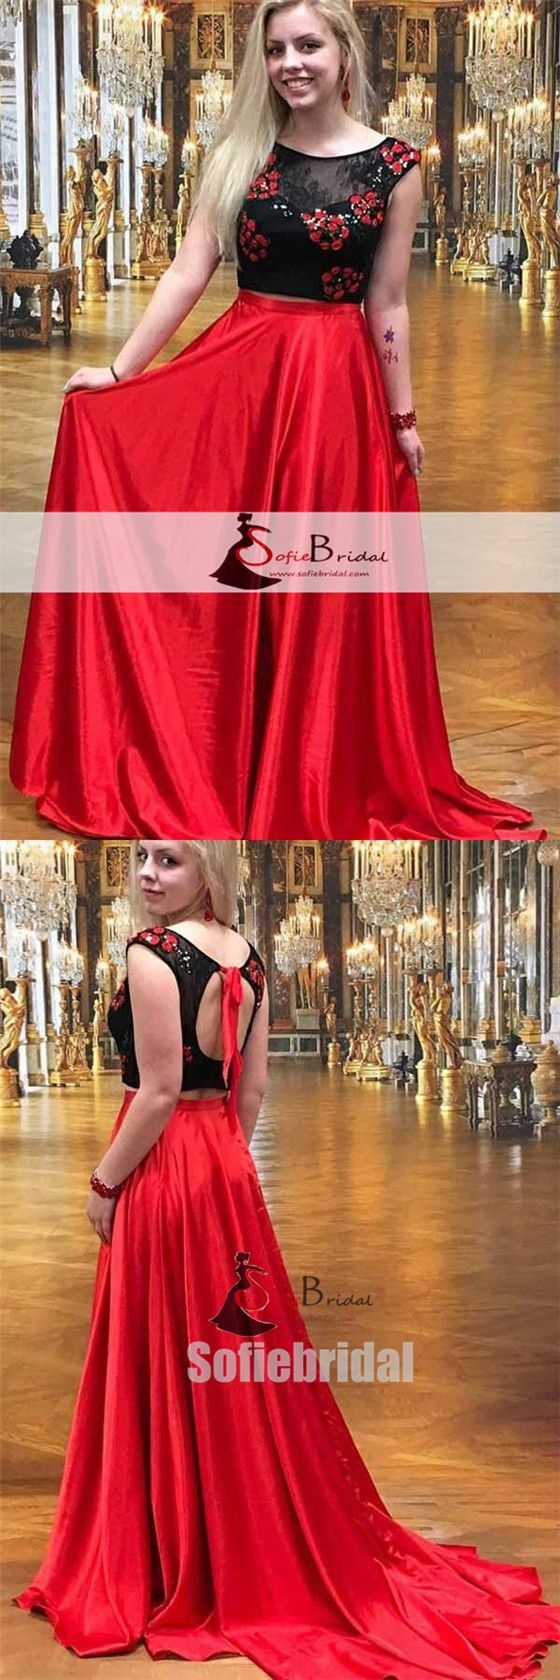 pieces black top open back prom dresses red aline satin prom